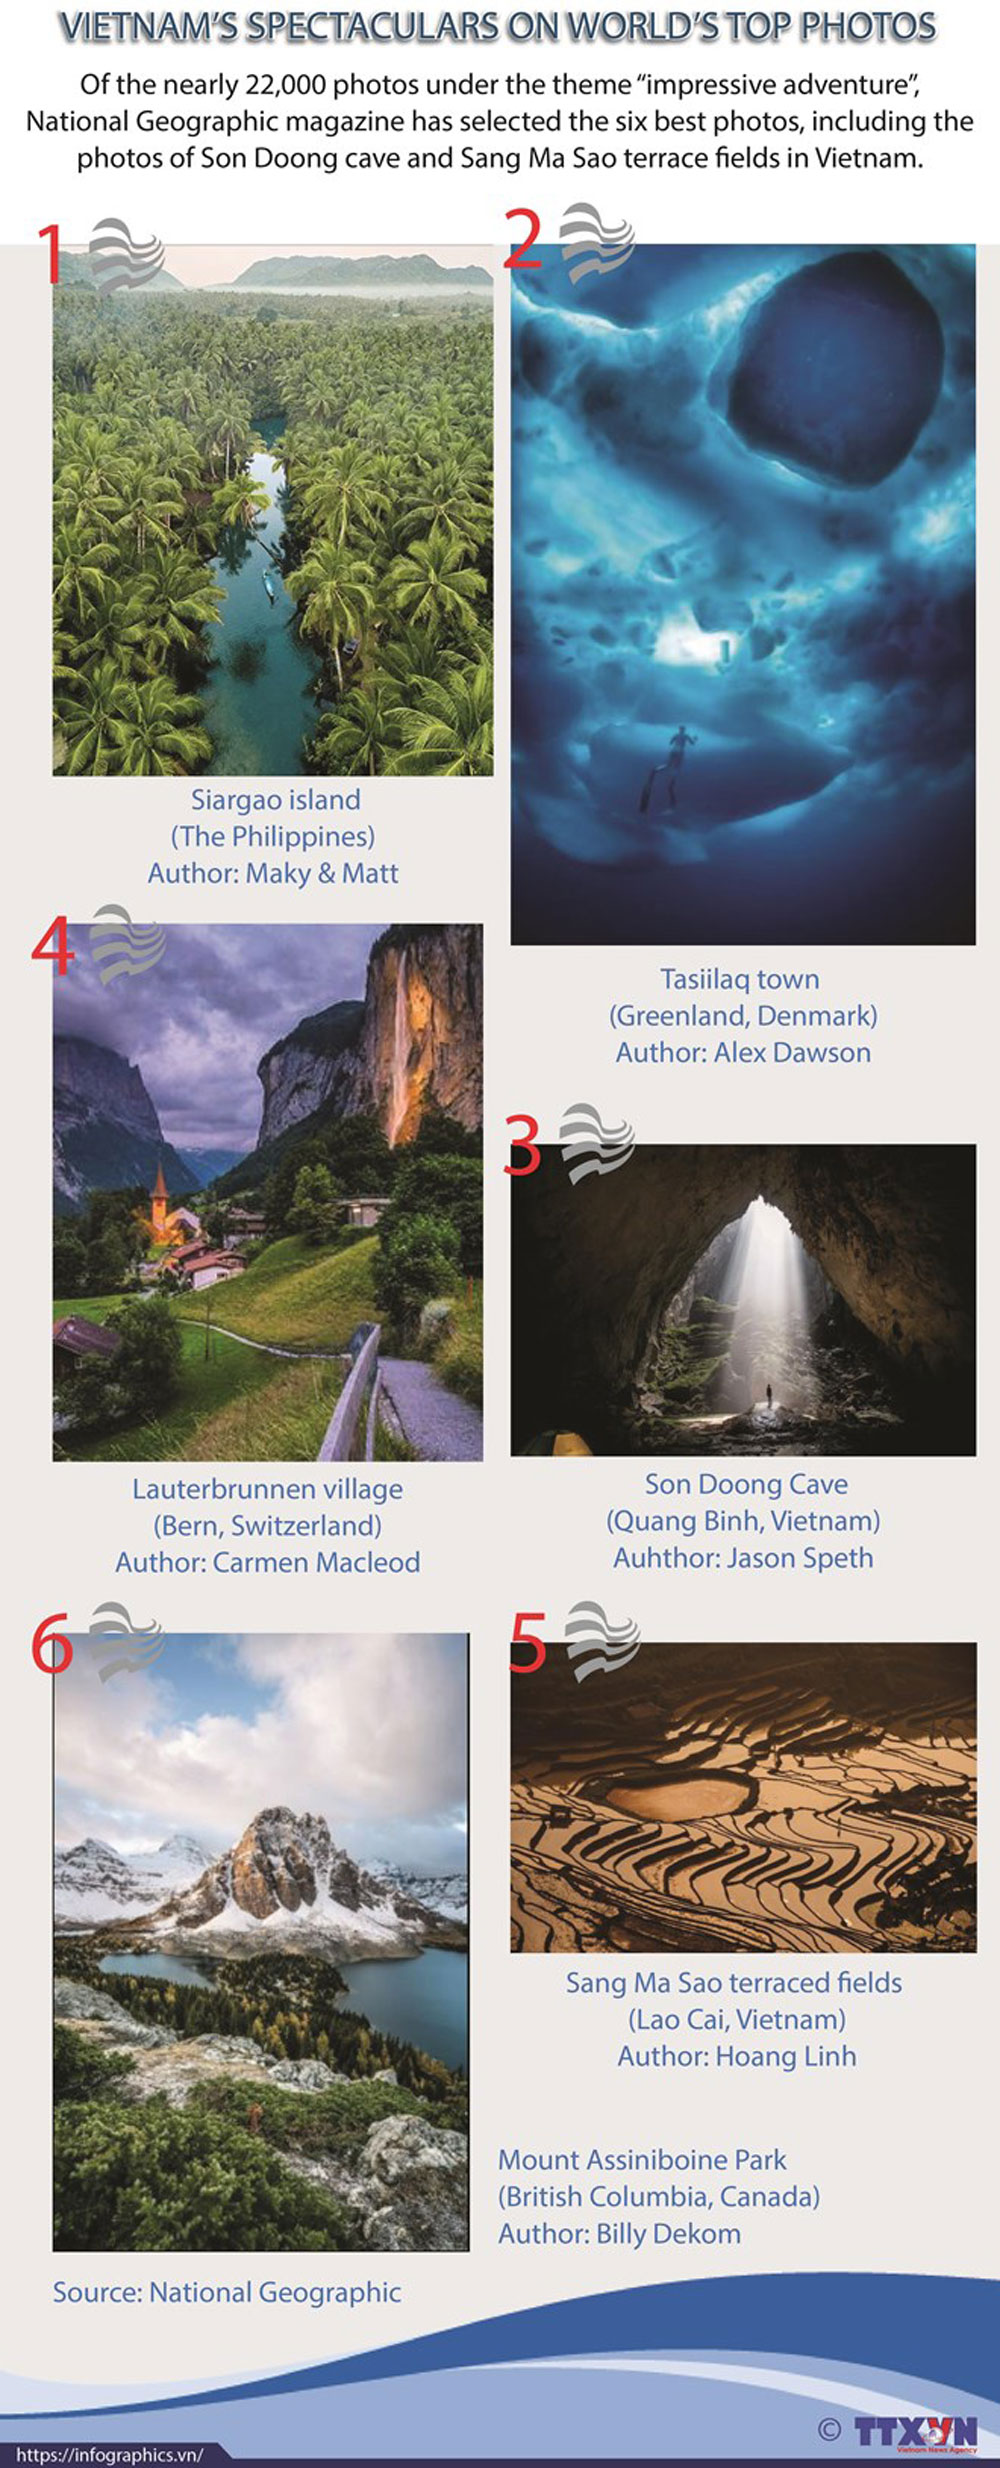 Vietnam's spectaculars, world's top photos, Son Doong Cave, Sang Ma Sao terrace fields